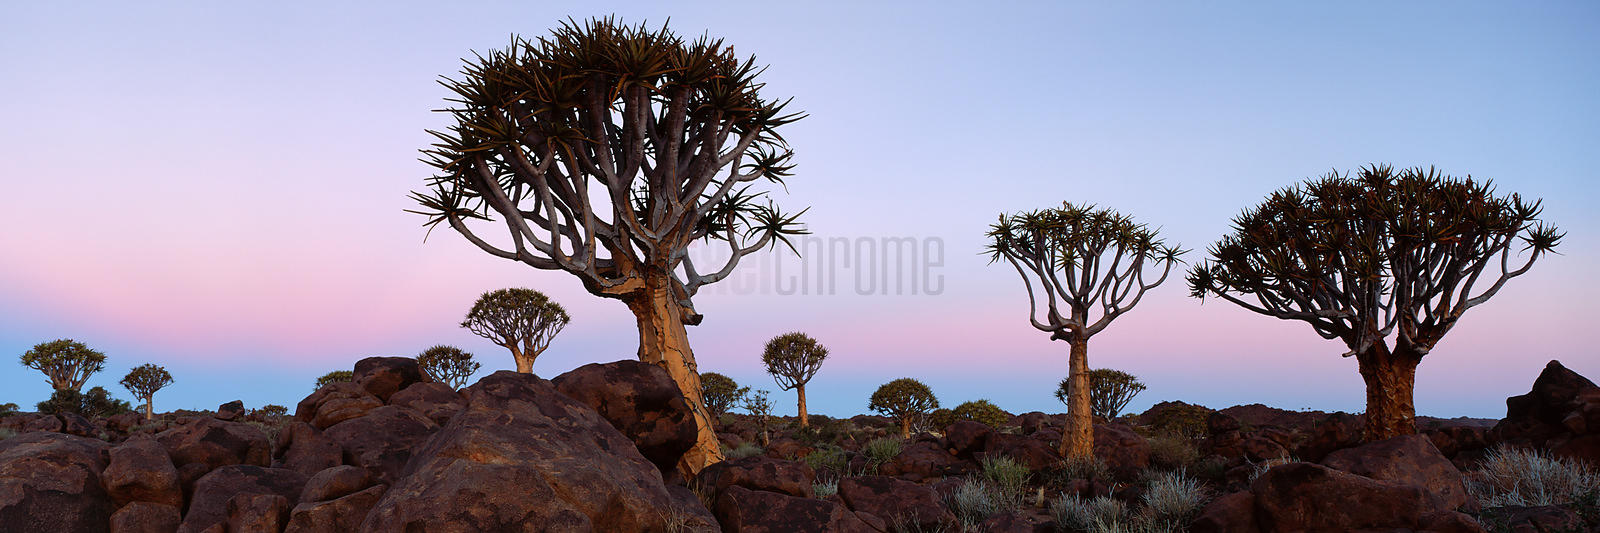 Kokerboom (Quiver Tree) Forest